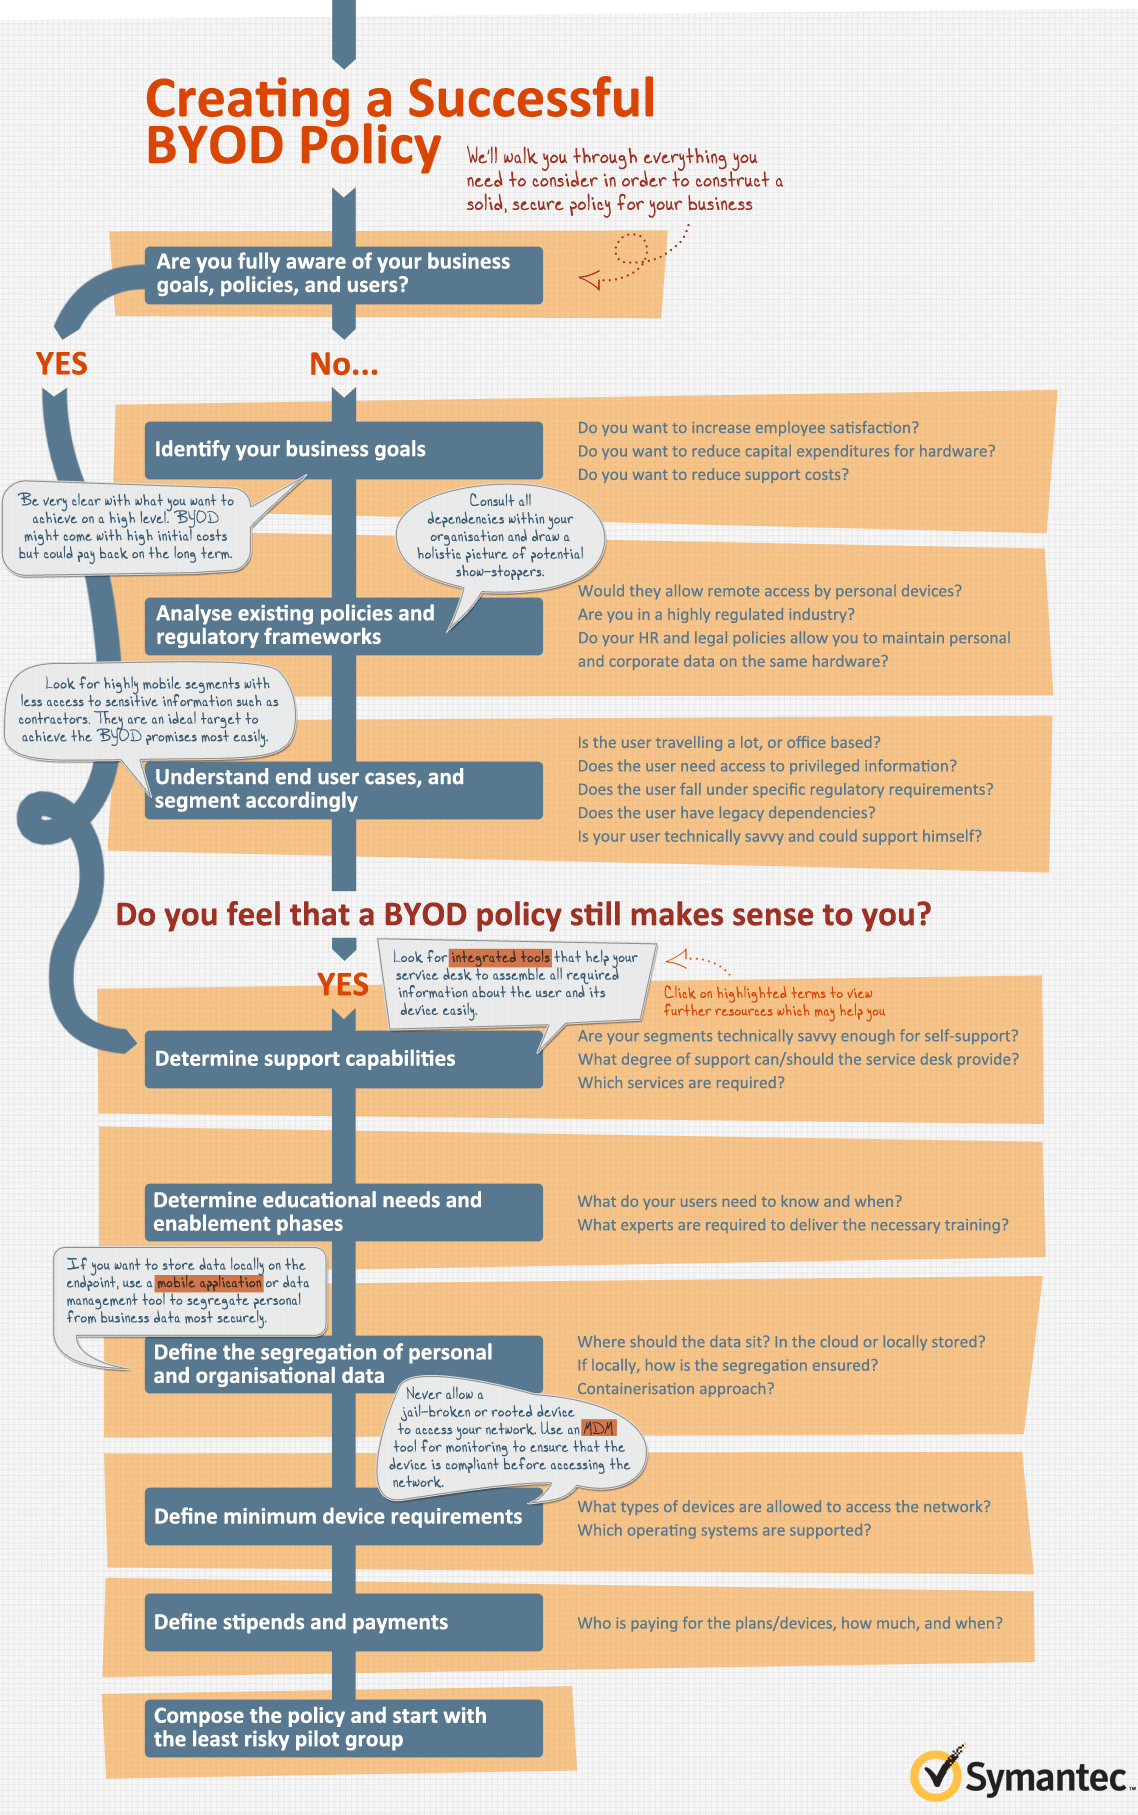 How to Create a BYOD Policy